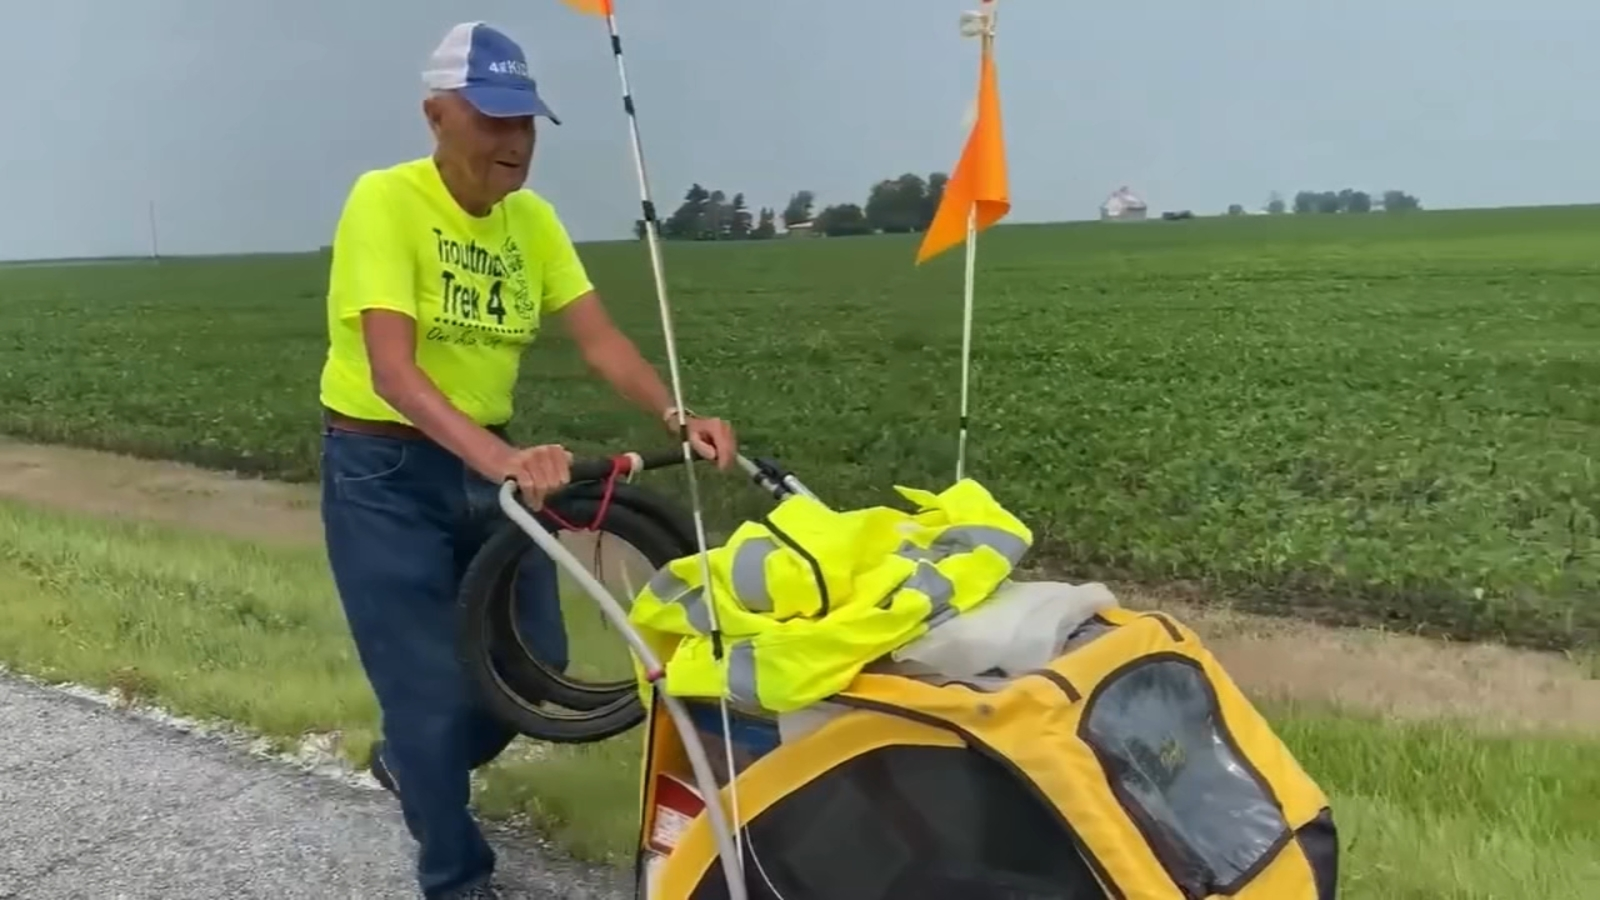 90-year-old Peoria man walks thousands of miles to fight childhood cancer